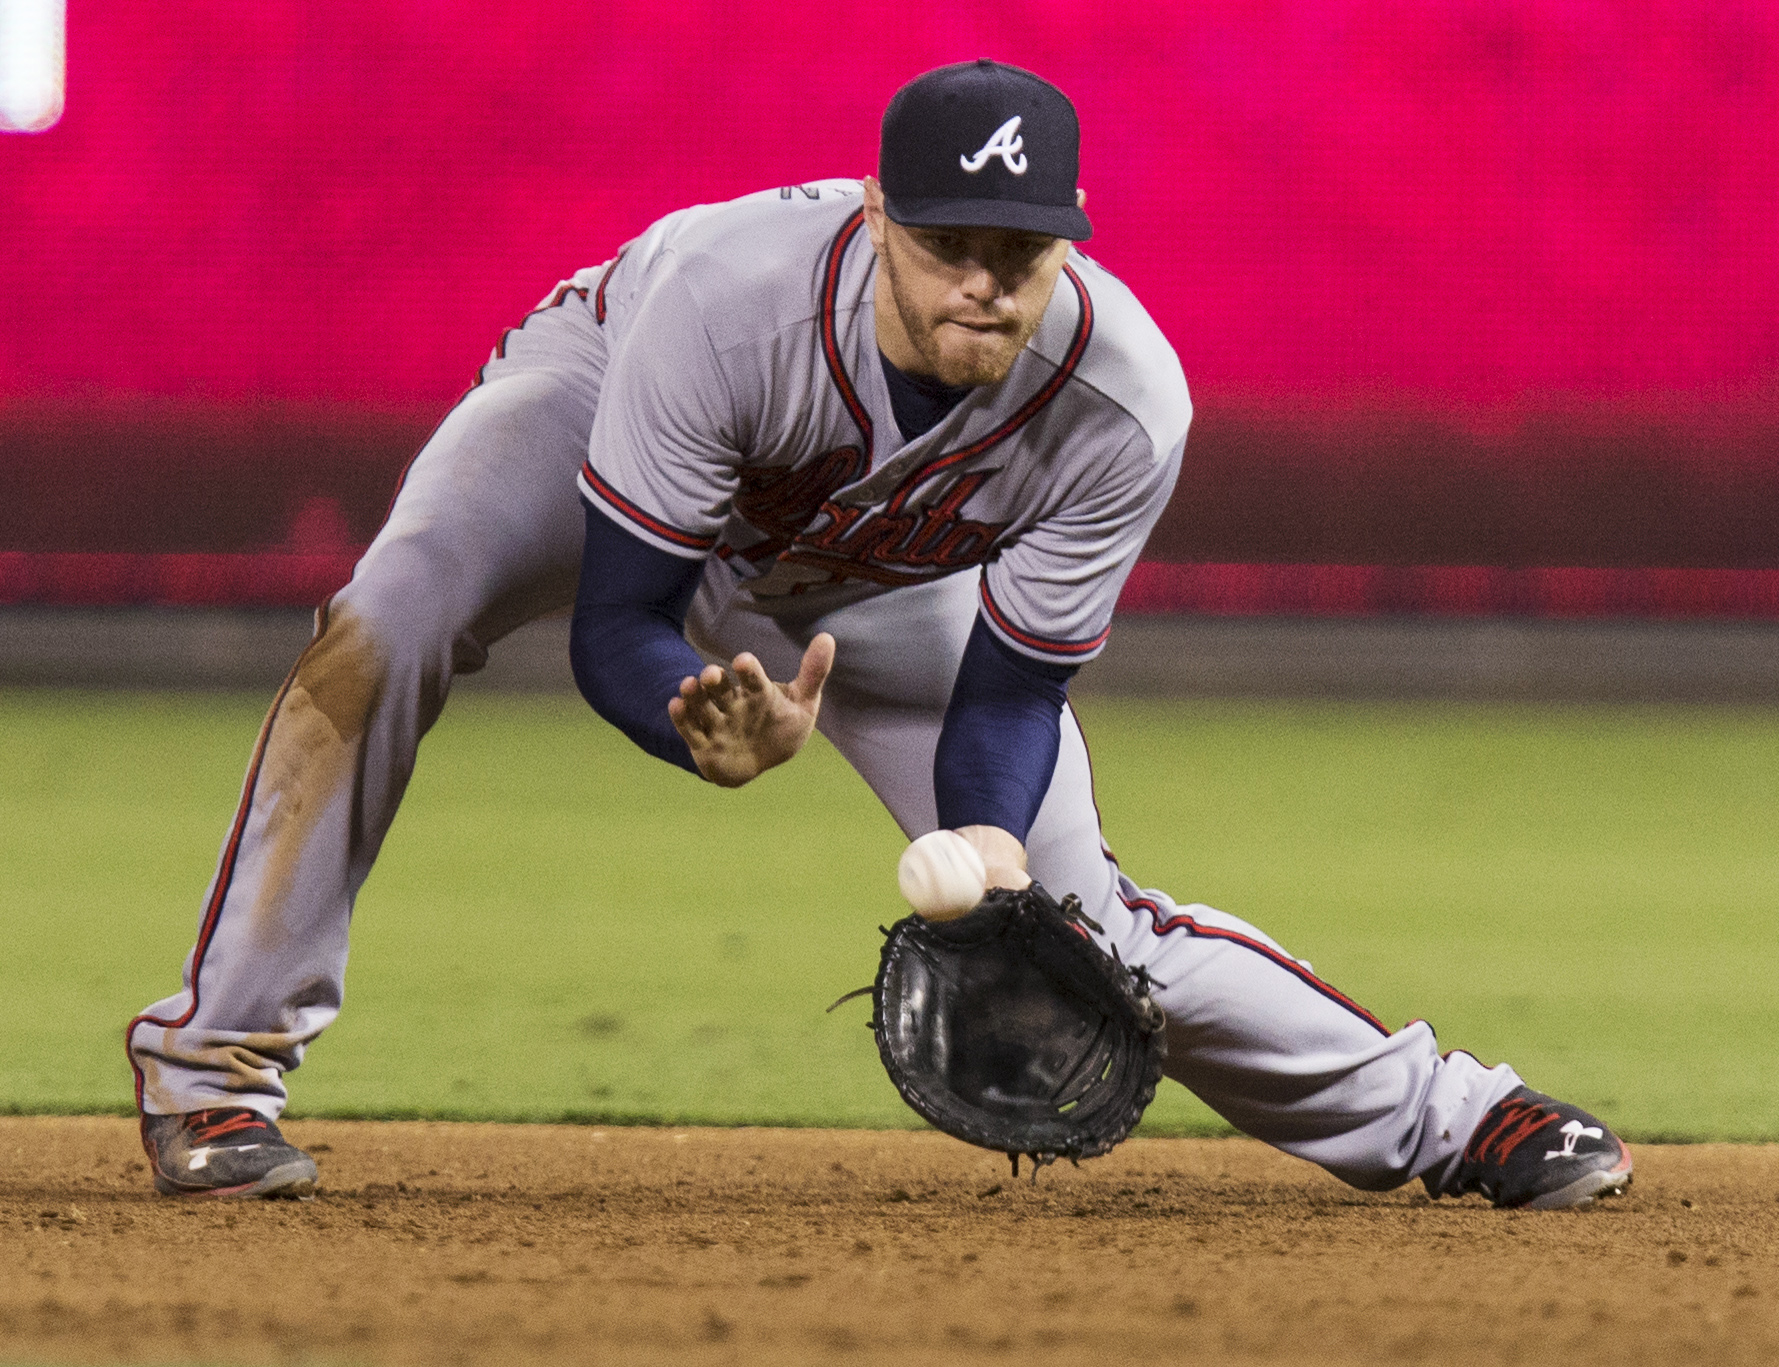 Atlanta Braves first baseman Freddie Freeman fields a grounder by Philadelphia Phillies' Ryan Howard during the fourth inning of a baseball game, Wednesday, Sept. 9, 2015, in Philadelphia. Howard was out at first. (AP Photo/Laurence Kesterson)